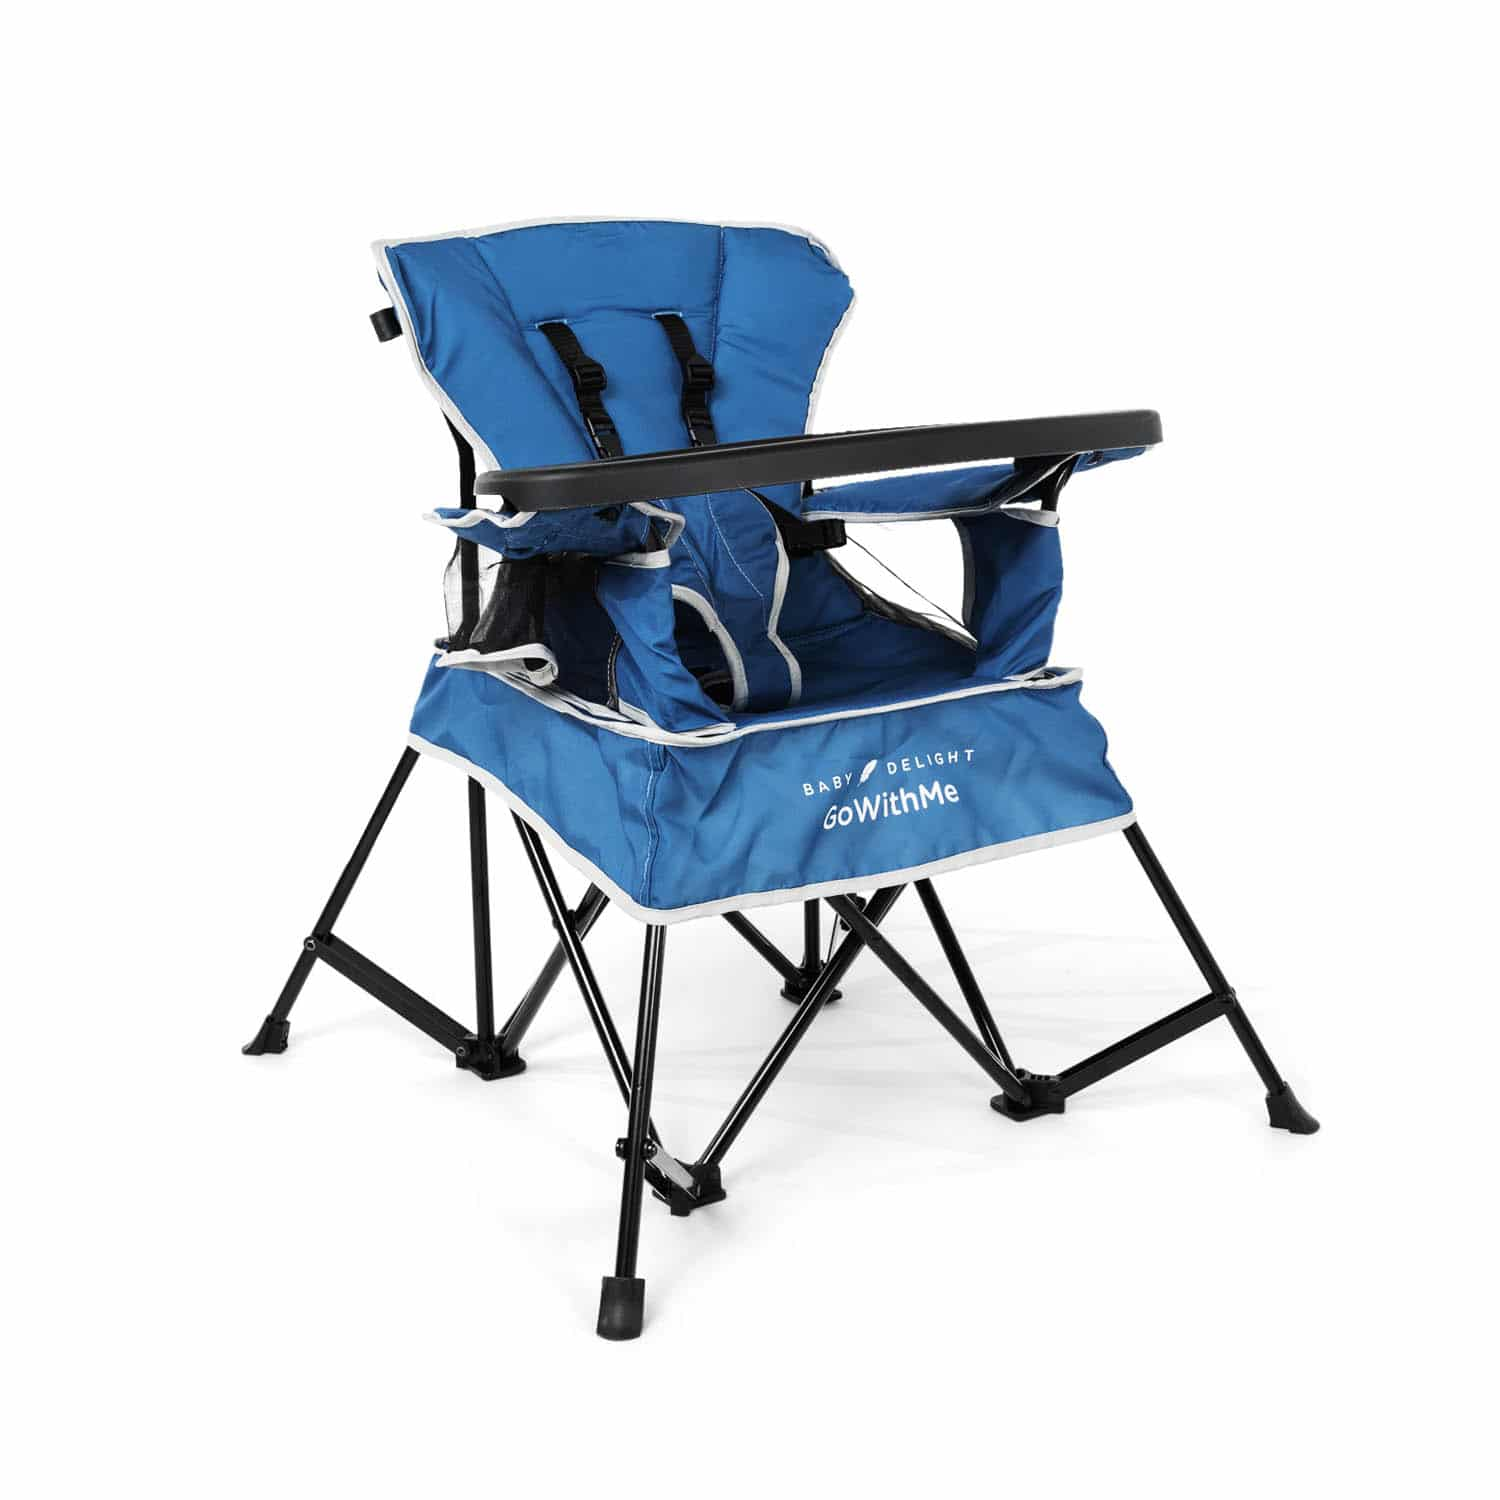 Deep Water Blue Baby Delight Go with Me Chair Indoor//Outdoor Chair with Sun Canopy Portable Chair Converts to 3 Child Growth Stages Standing /& Big Kid 3 Months to 75 Pound Weather Resistant Sitting